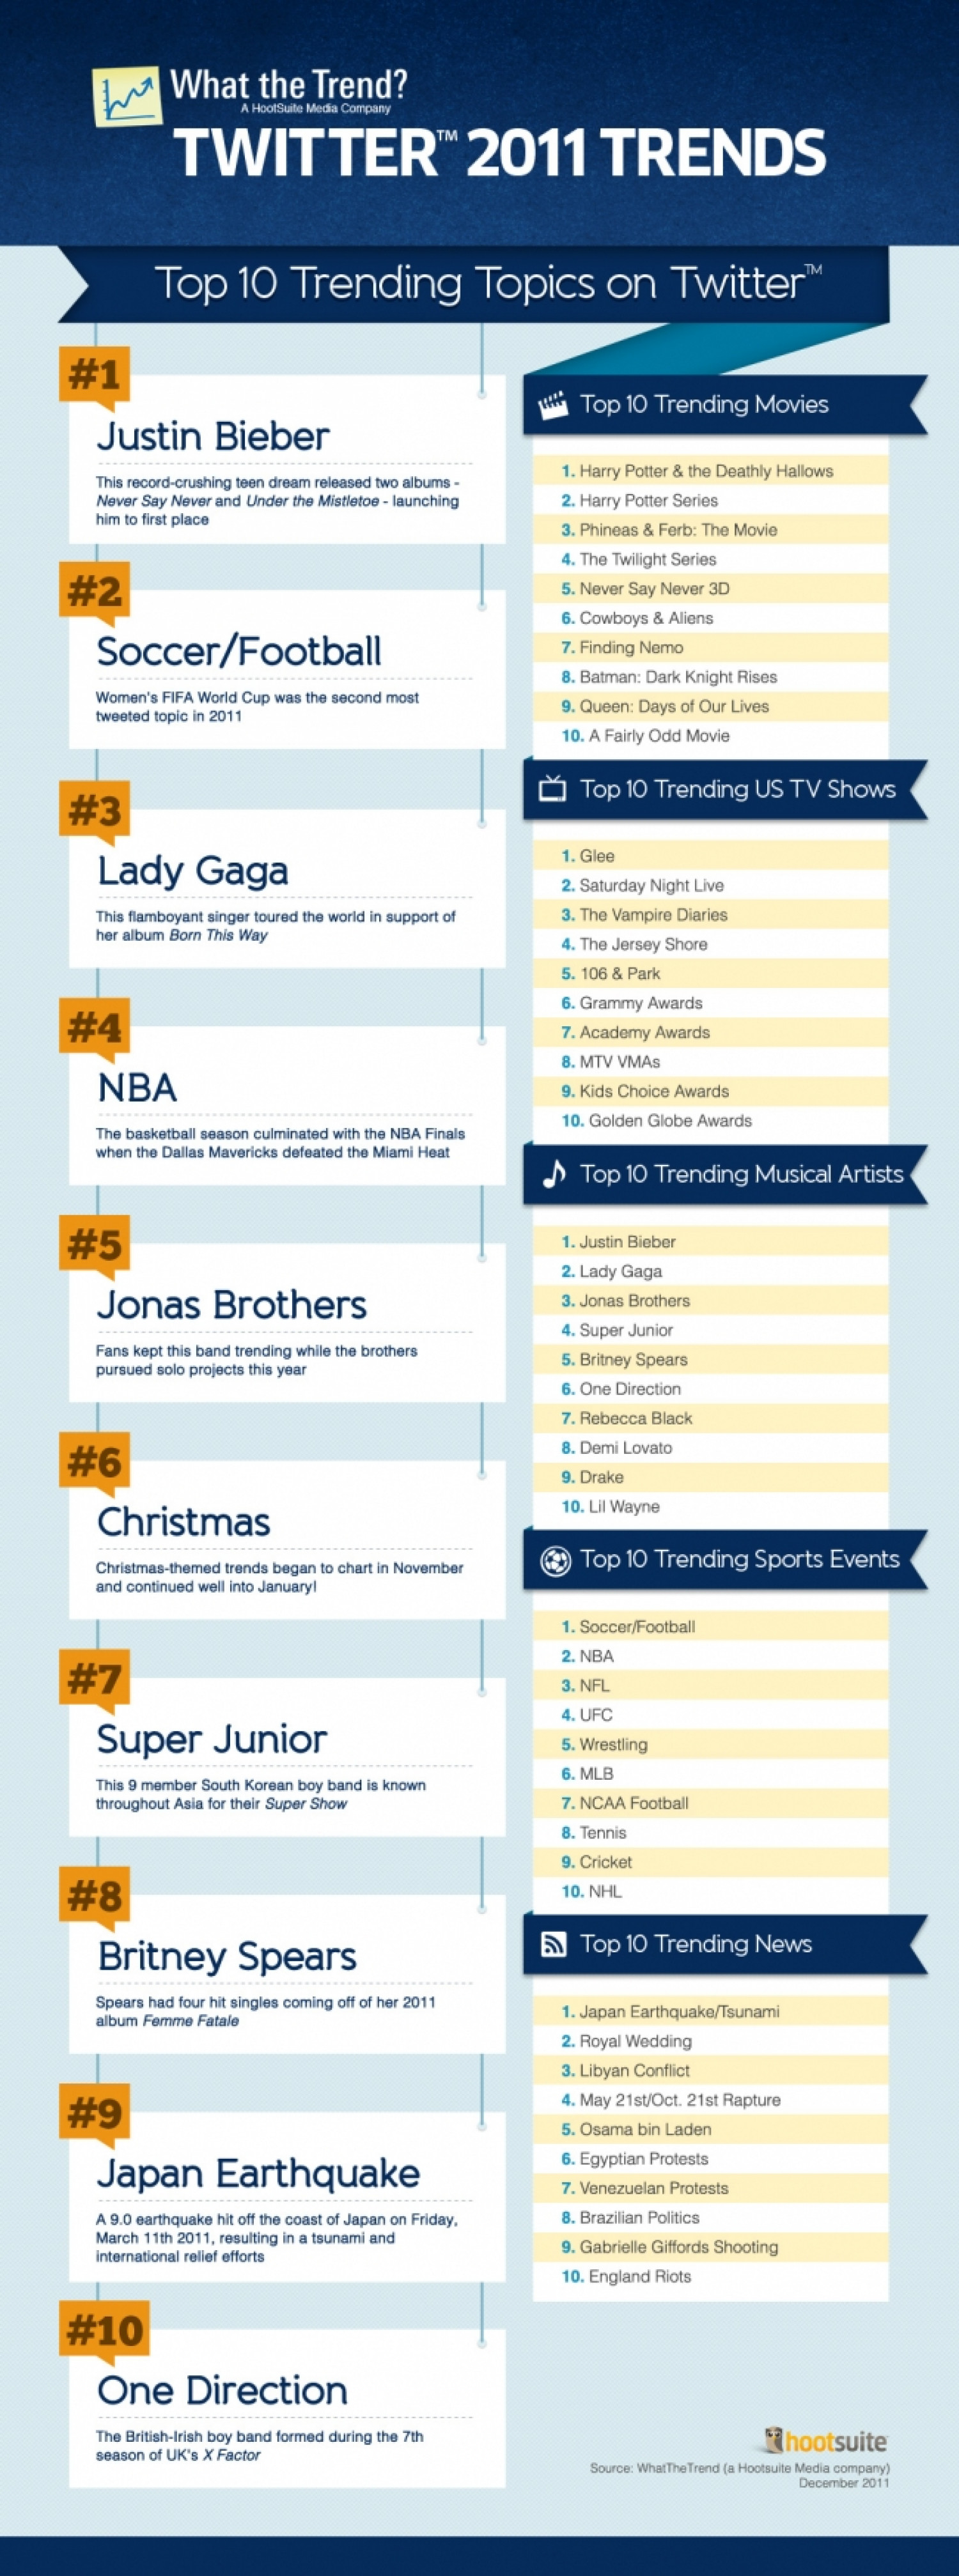 Top Trending #Twitter Topics for 2011 from What the Trend #WtT Infographic